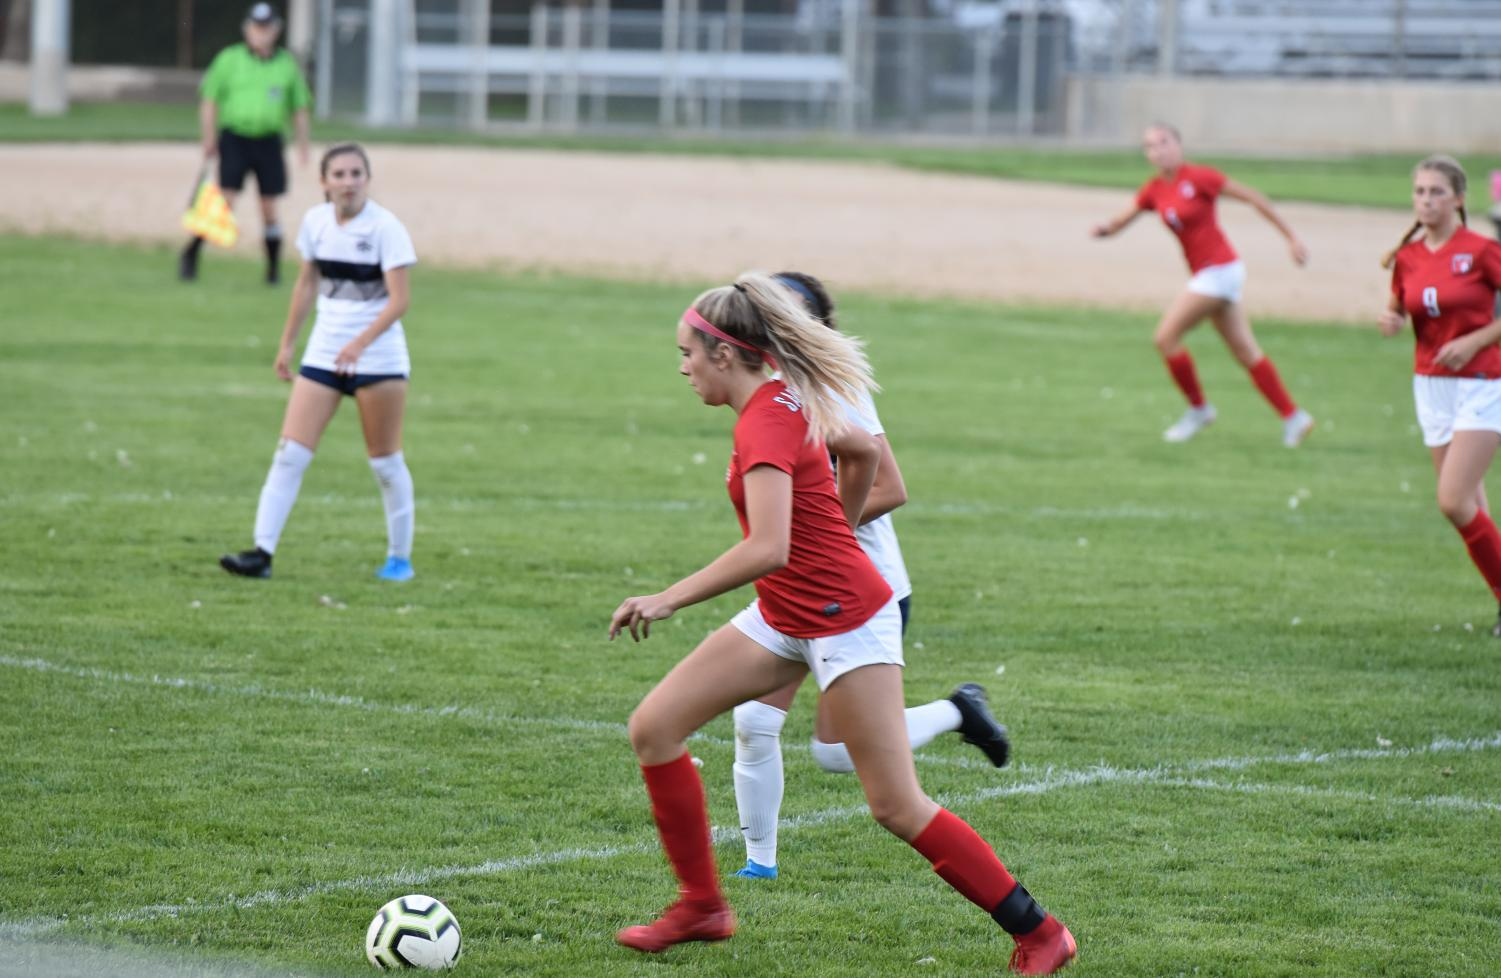 Sophomore+Emma+Thielbahr+dribbles+past+an+opponent+and+looks+to+counter-attack+after+Lake+City+makes+the+score+2-0+in+the+second+half.+